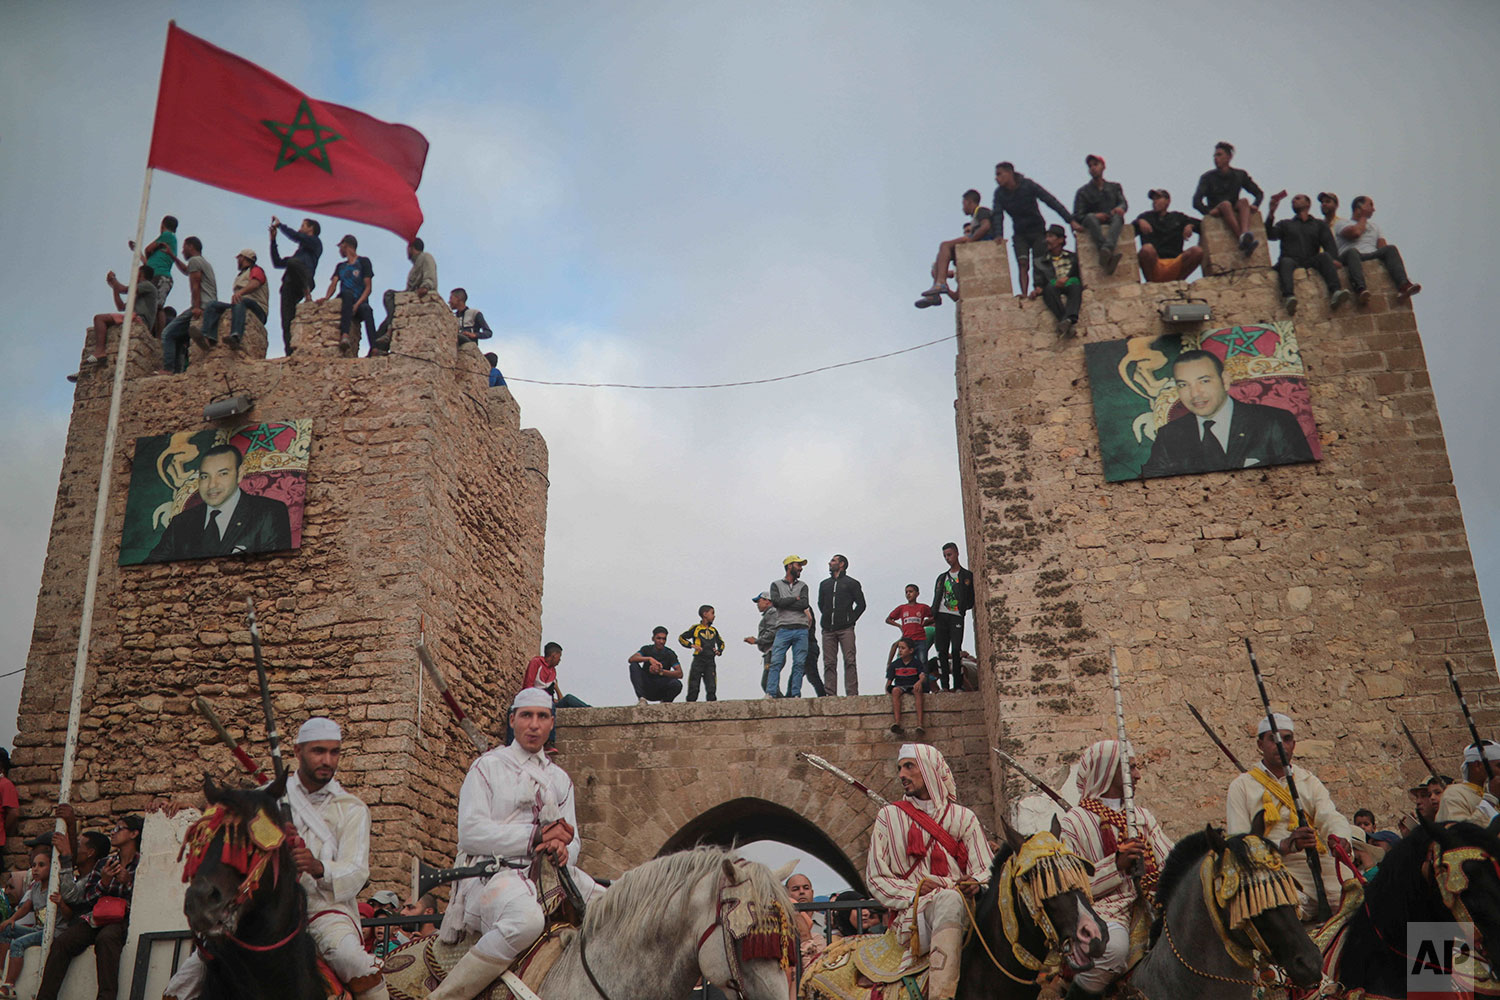 In this Thursday, July 25, 2019 photo, people watch atop an ancient wall as riders wait during Tabourida, a traditional horse riding show also known as Fantasia, in the coastal town of El Jadida, Morocco.  (AP Photo/Mosa'ab Elshamy)